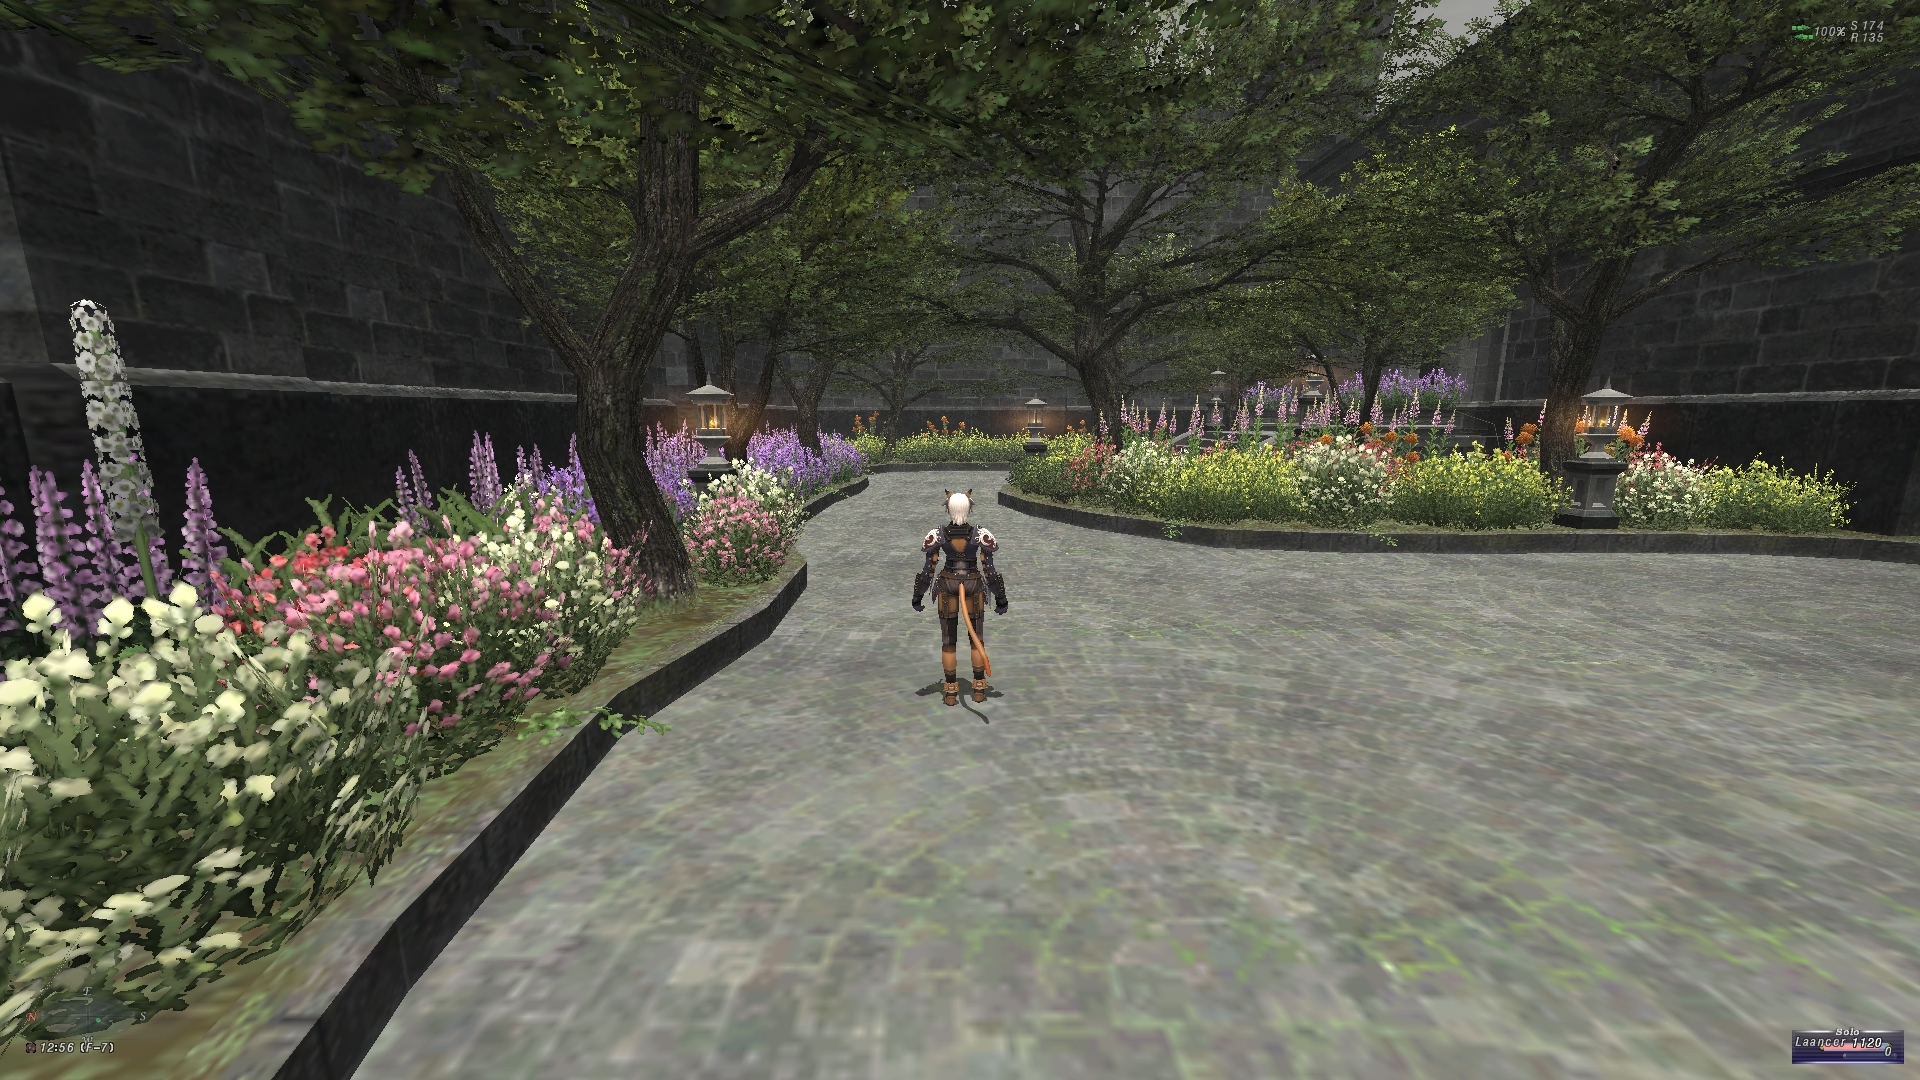 videogame avatar stands with back to camera in brick-floored garden.